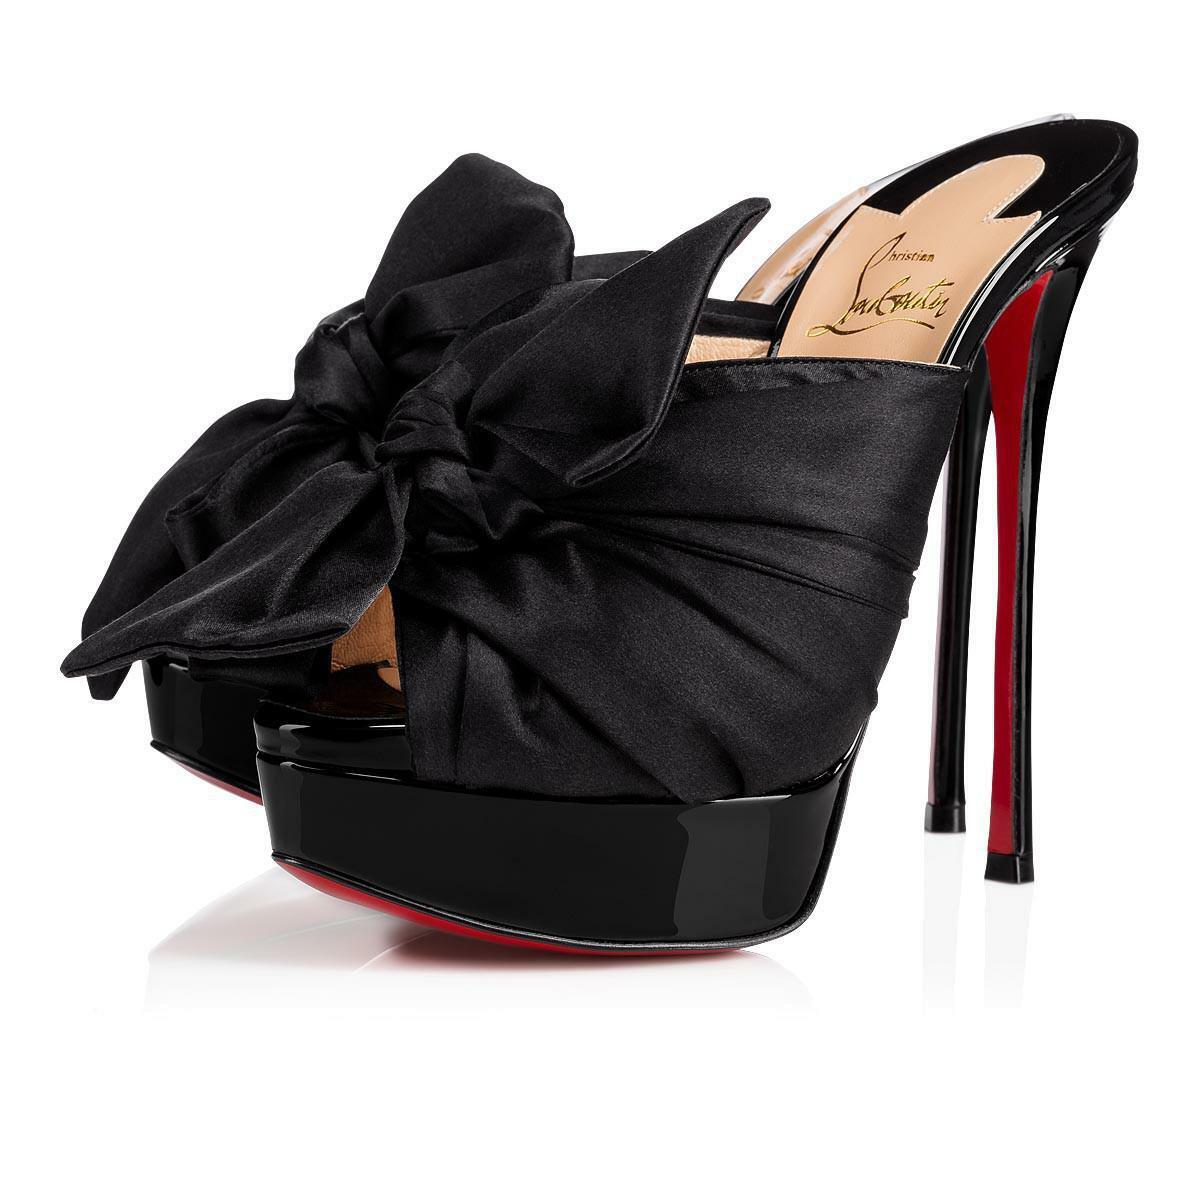 NIB Christian Louboutin Moniquissima 150 Black Bow Platform Sandal Heel Pump 36